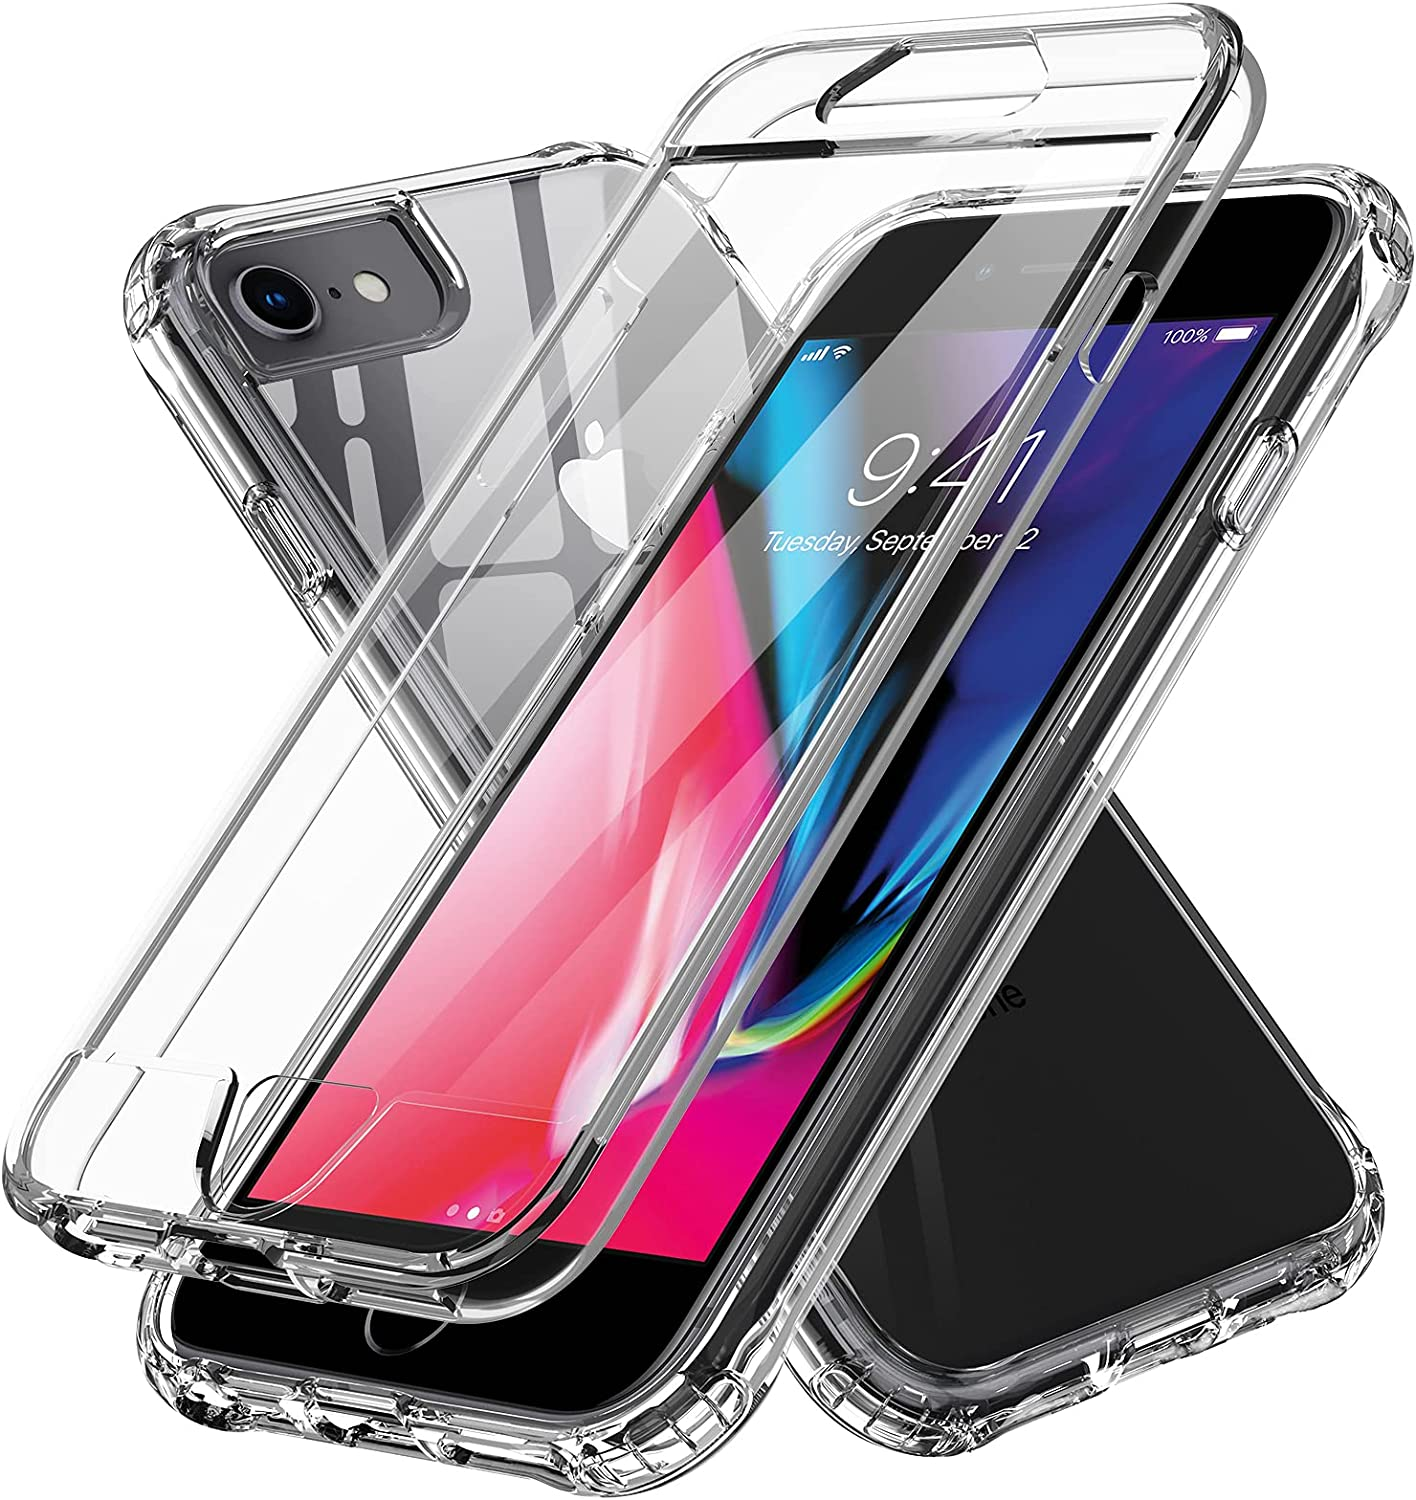 LeYi Compatible with iPhone 8 Case, iPhone SE 2020 Case, iPhone 7 Case with Built-in Screen Protector, 360 Full-Body Protective Dual Layer Shockproof Slim Clear Phone Cover Case for iPhone 6s/6, Clear